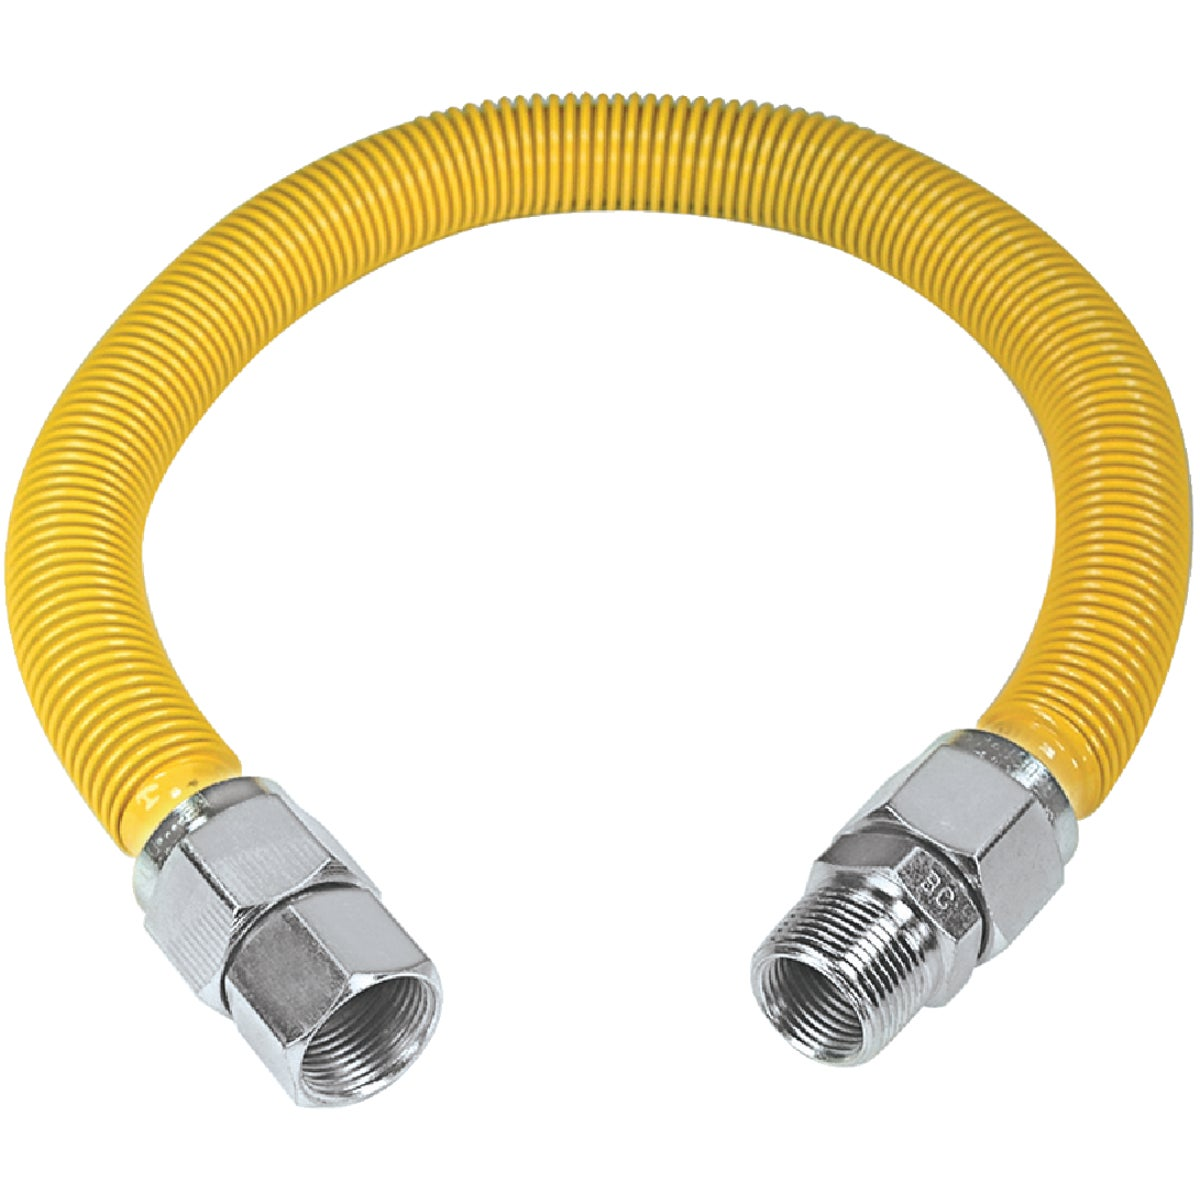 7/8X36 GAS CONNECTOR